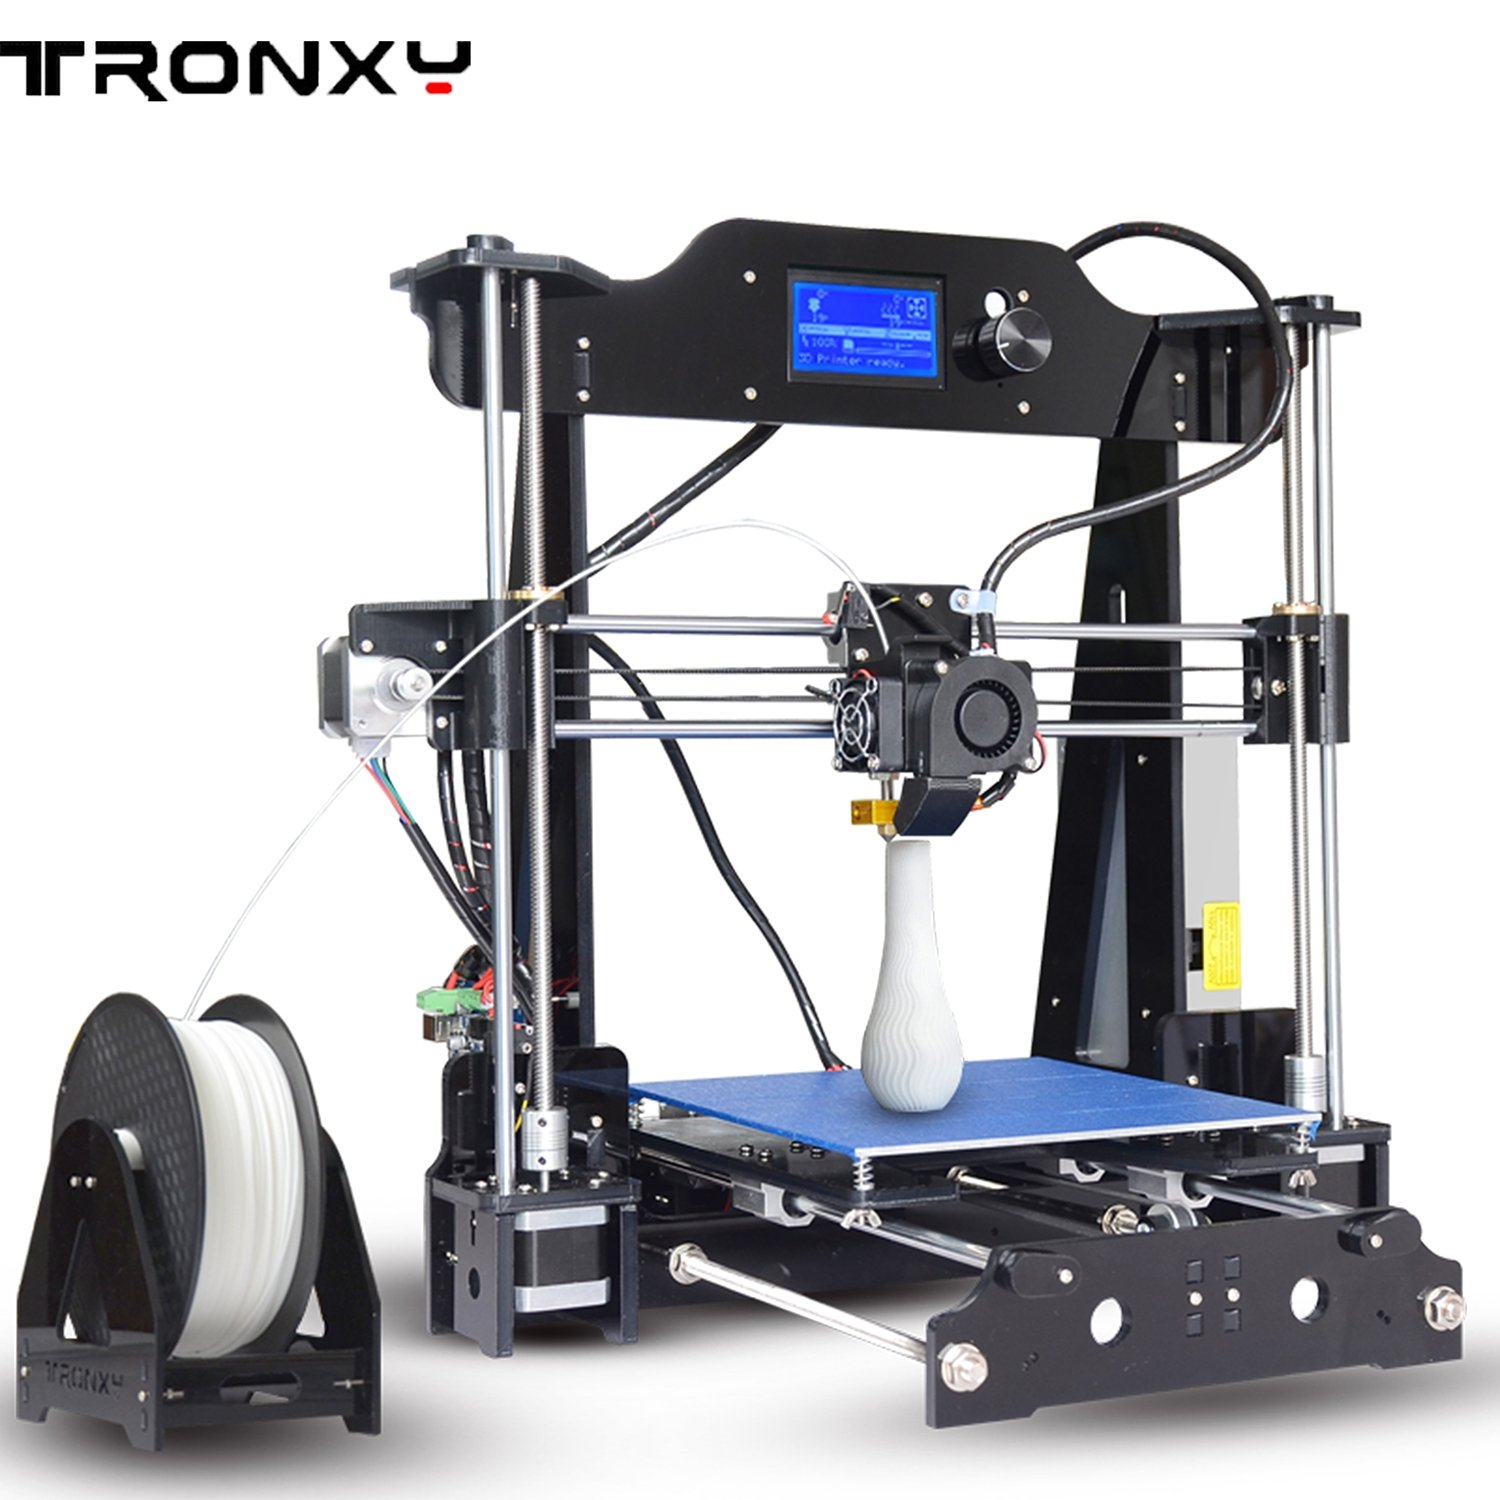 Tronxy X8 DIY Desktop 3D Drucker Druckgrö ß e 220x220x200mm Poncherish